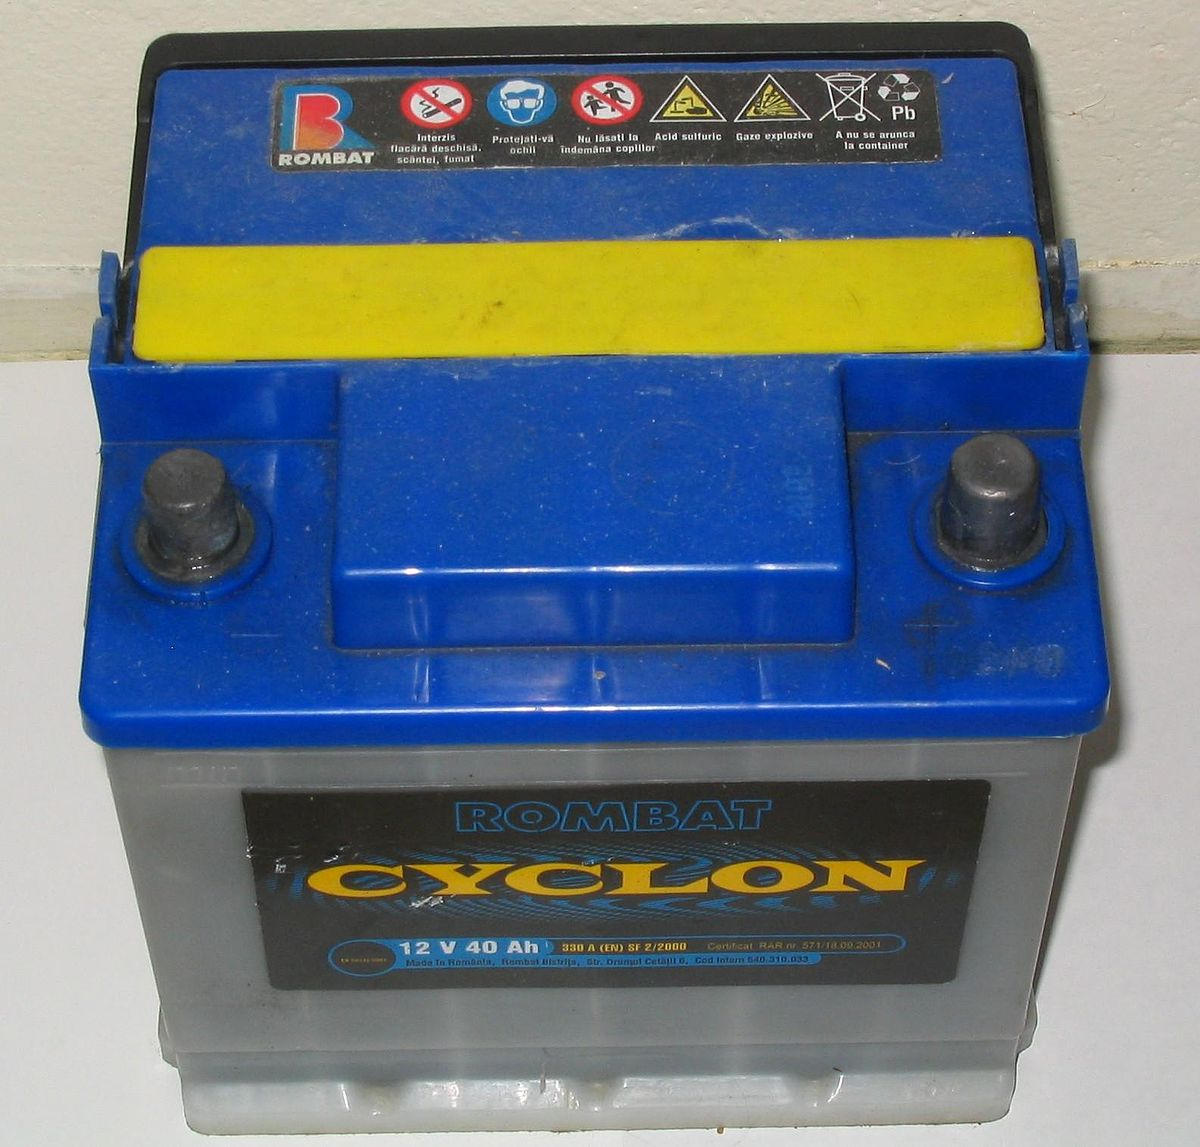 Lead Acid Battery : Lead acid battery wikipedia